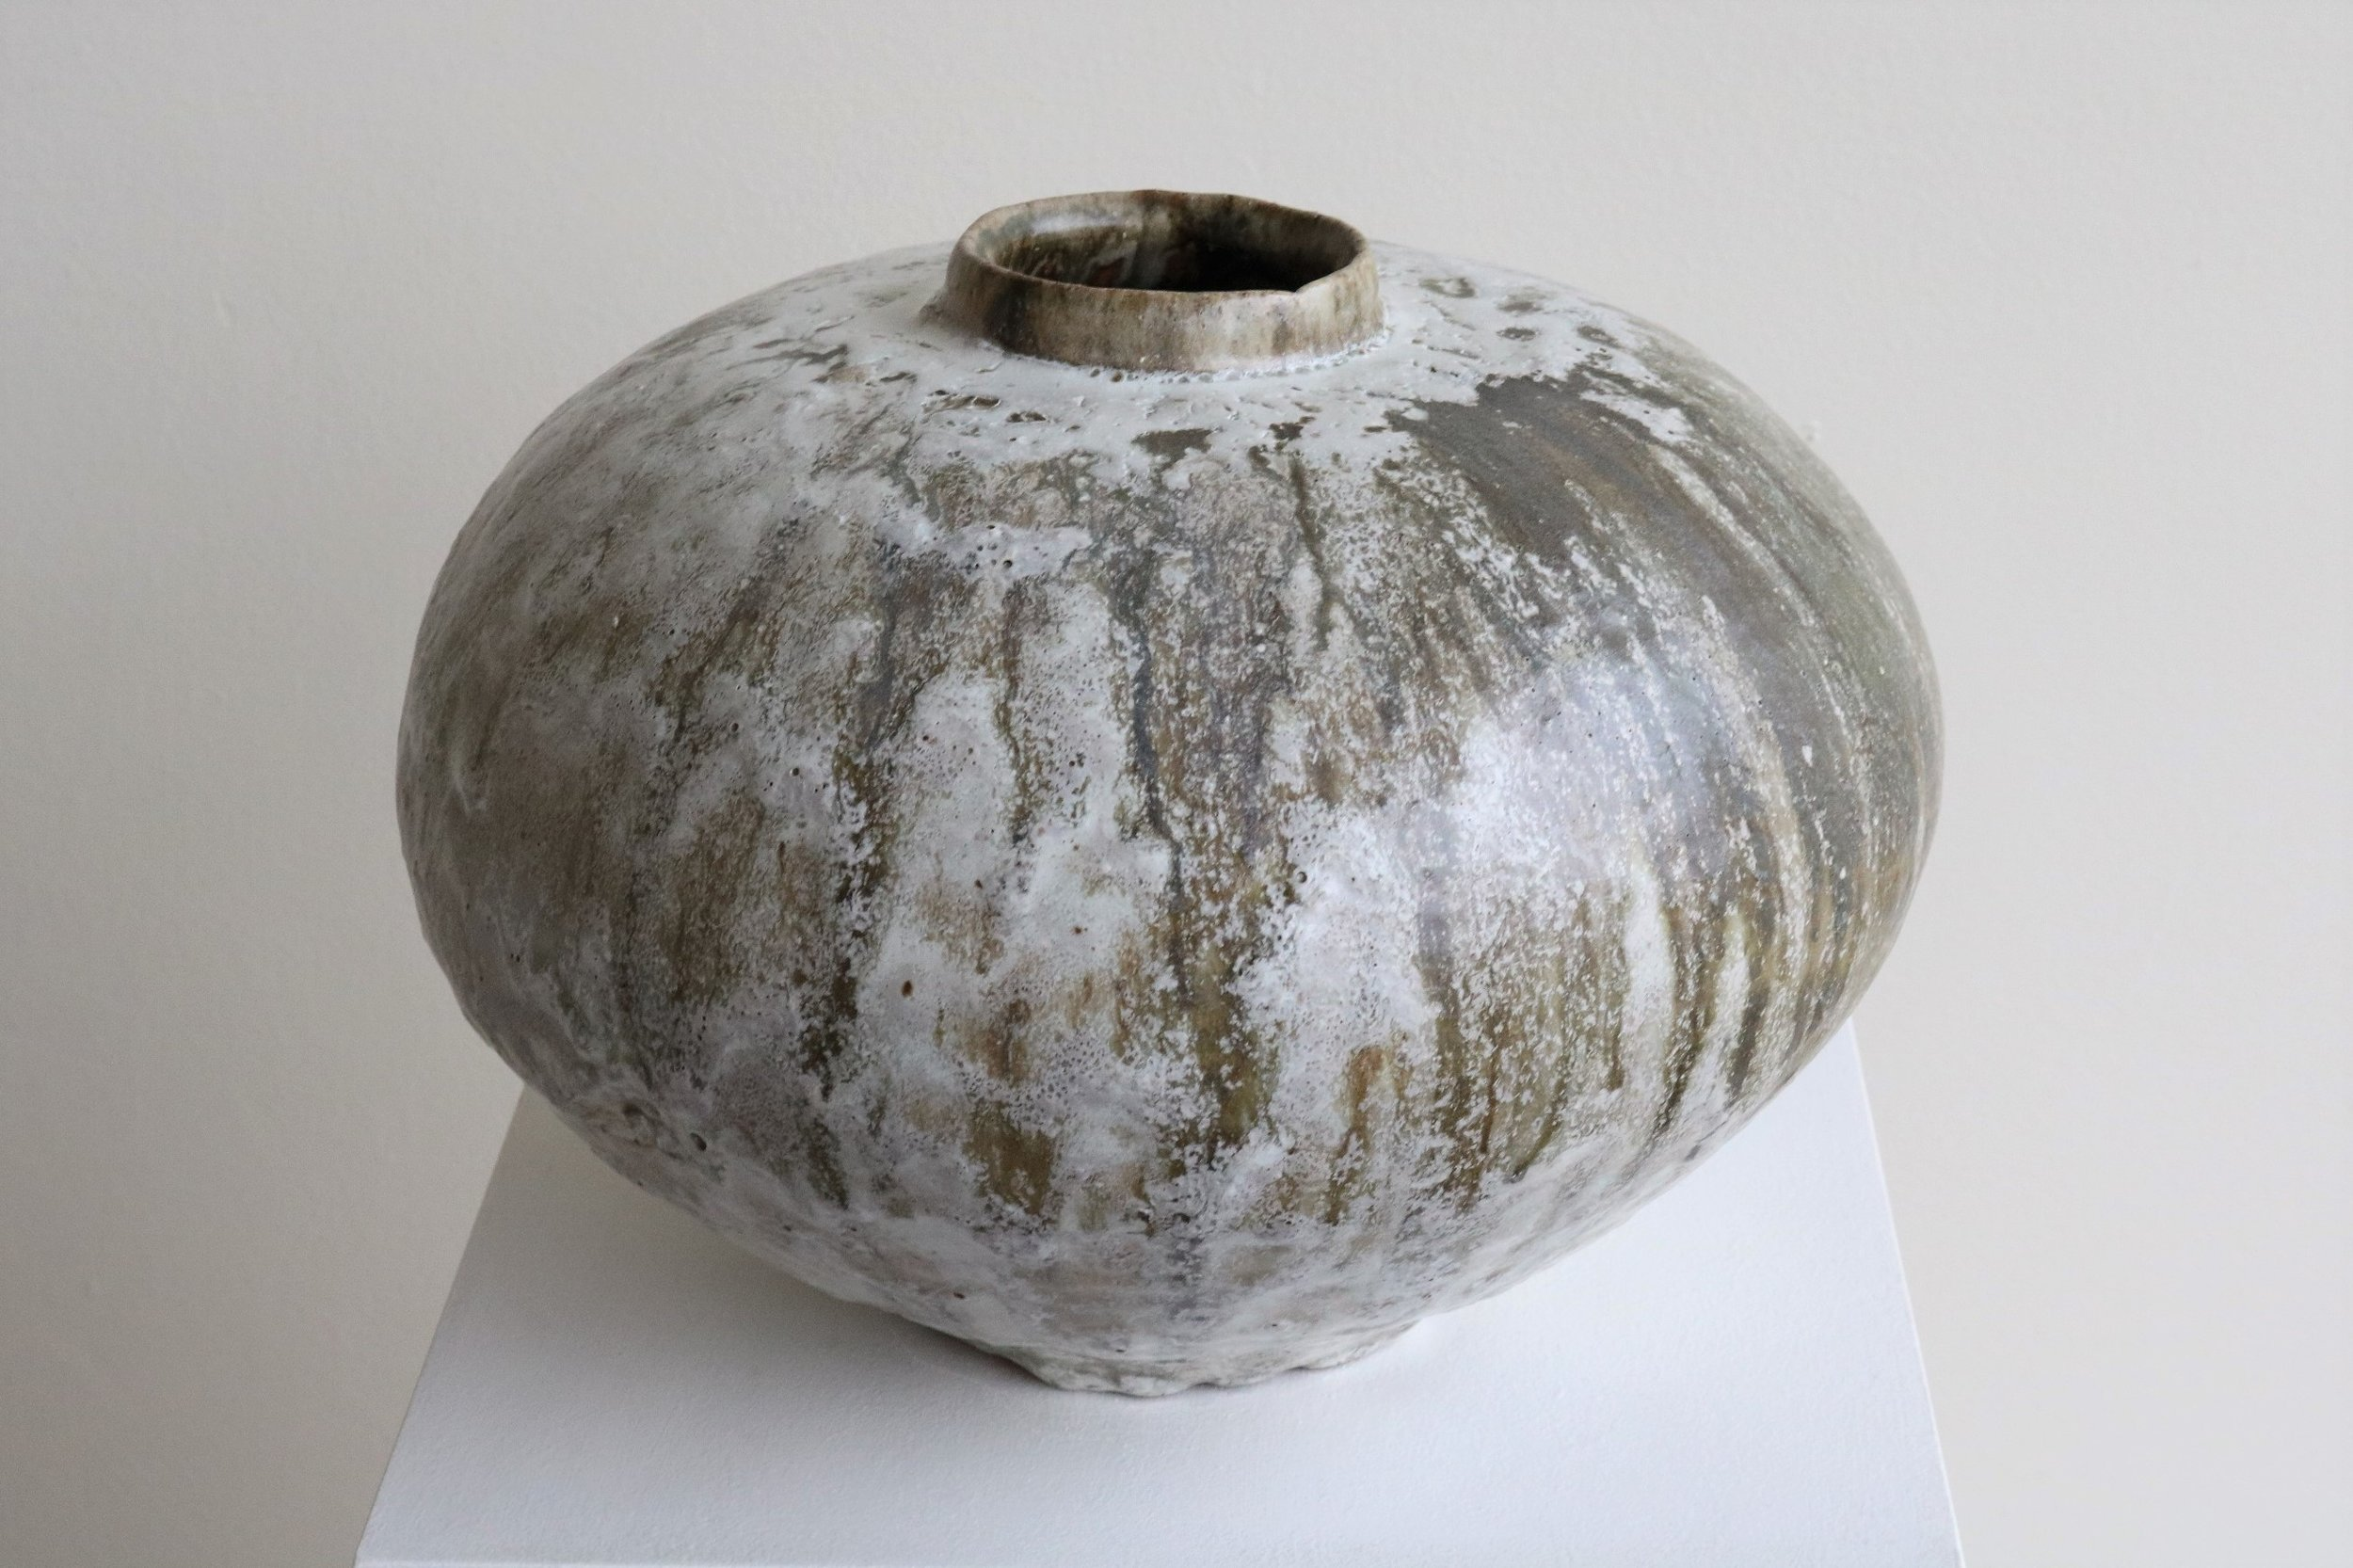 Owen Rye Special Presentation: My career in wood fired ceramics, the current state of wood firing and its future, guide to writing about ceramics, Skepsi @ Malvern, June 2017